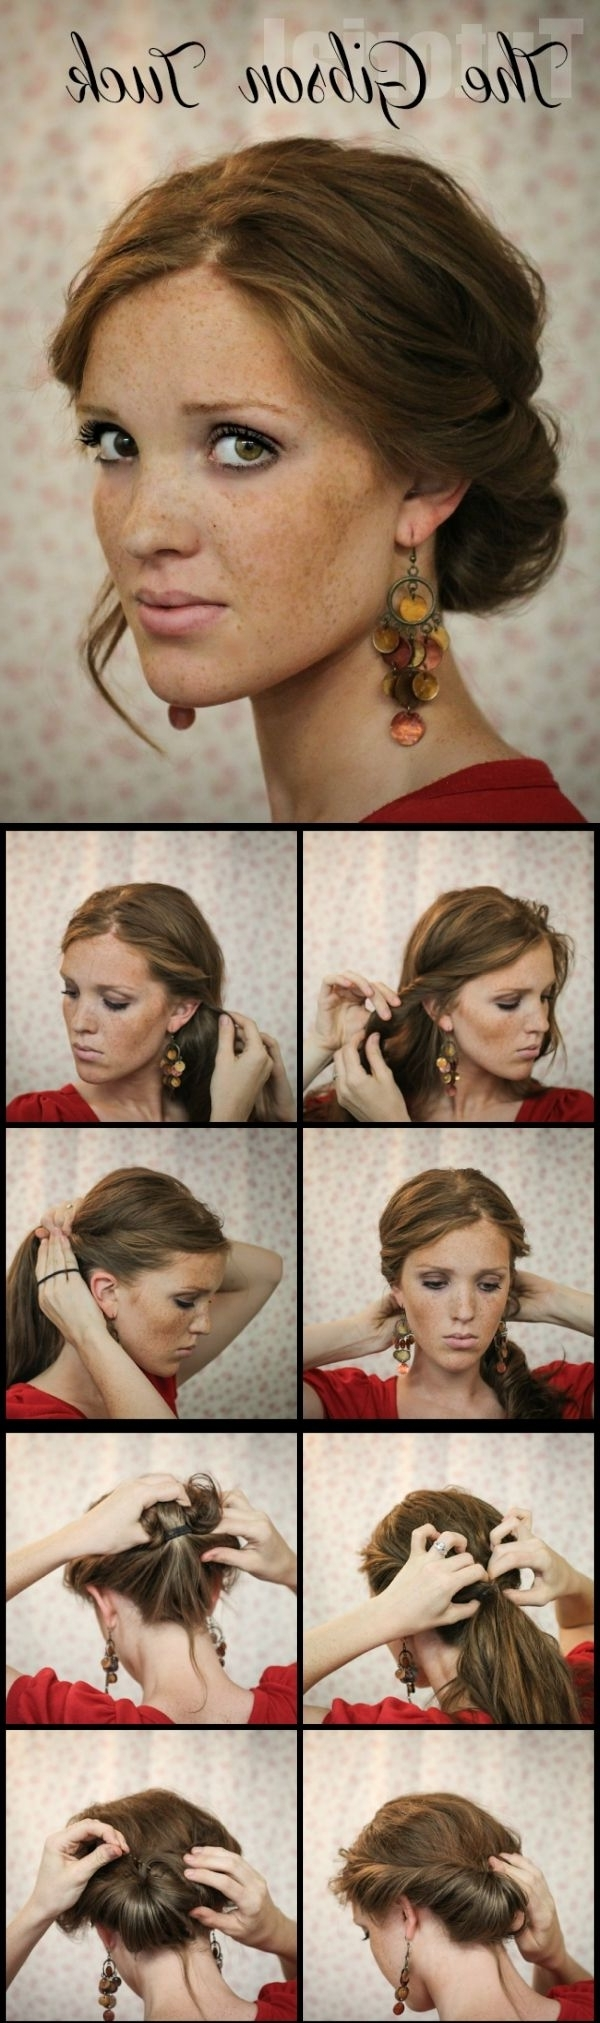 181 Best Updo Hairstyles Images On Pinterest | Chignons, Hair Dos Regarding Easy Vintage Updo Hairstyles (View 5 of 15)